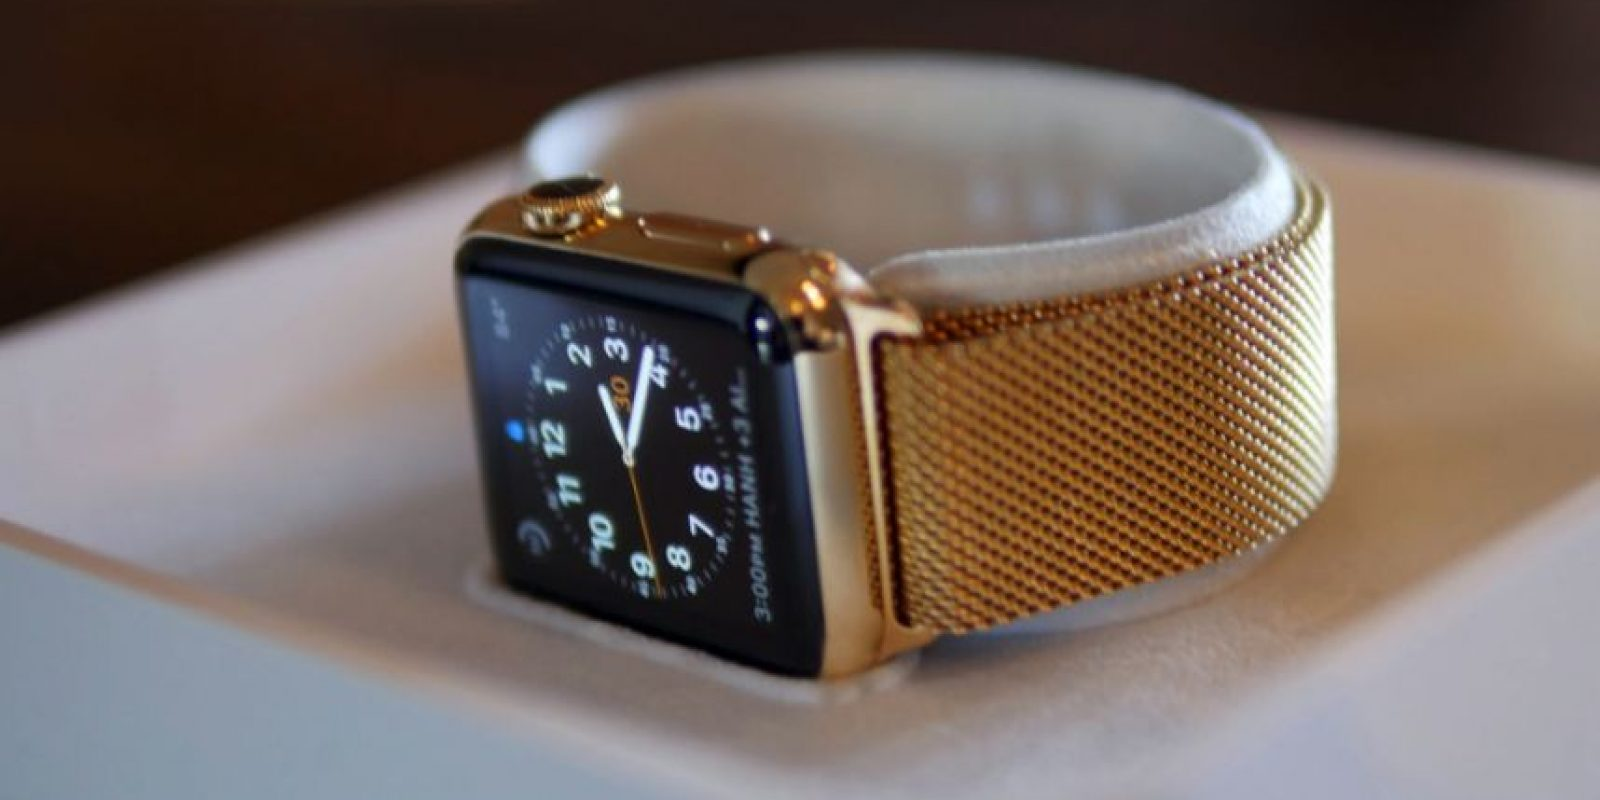 Así se vería su Apple Watch de oro por solo 399 dólares Foto: WatchPlate